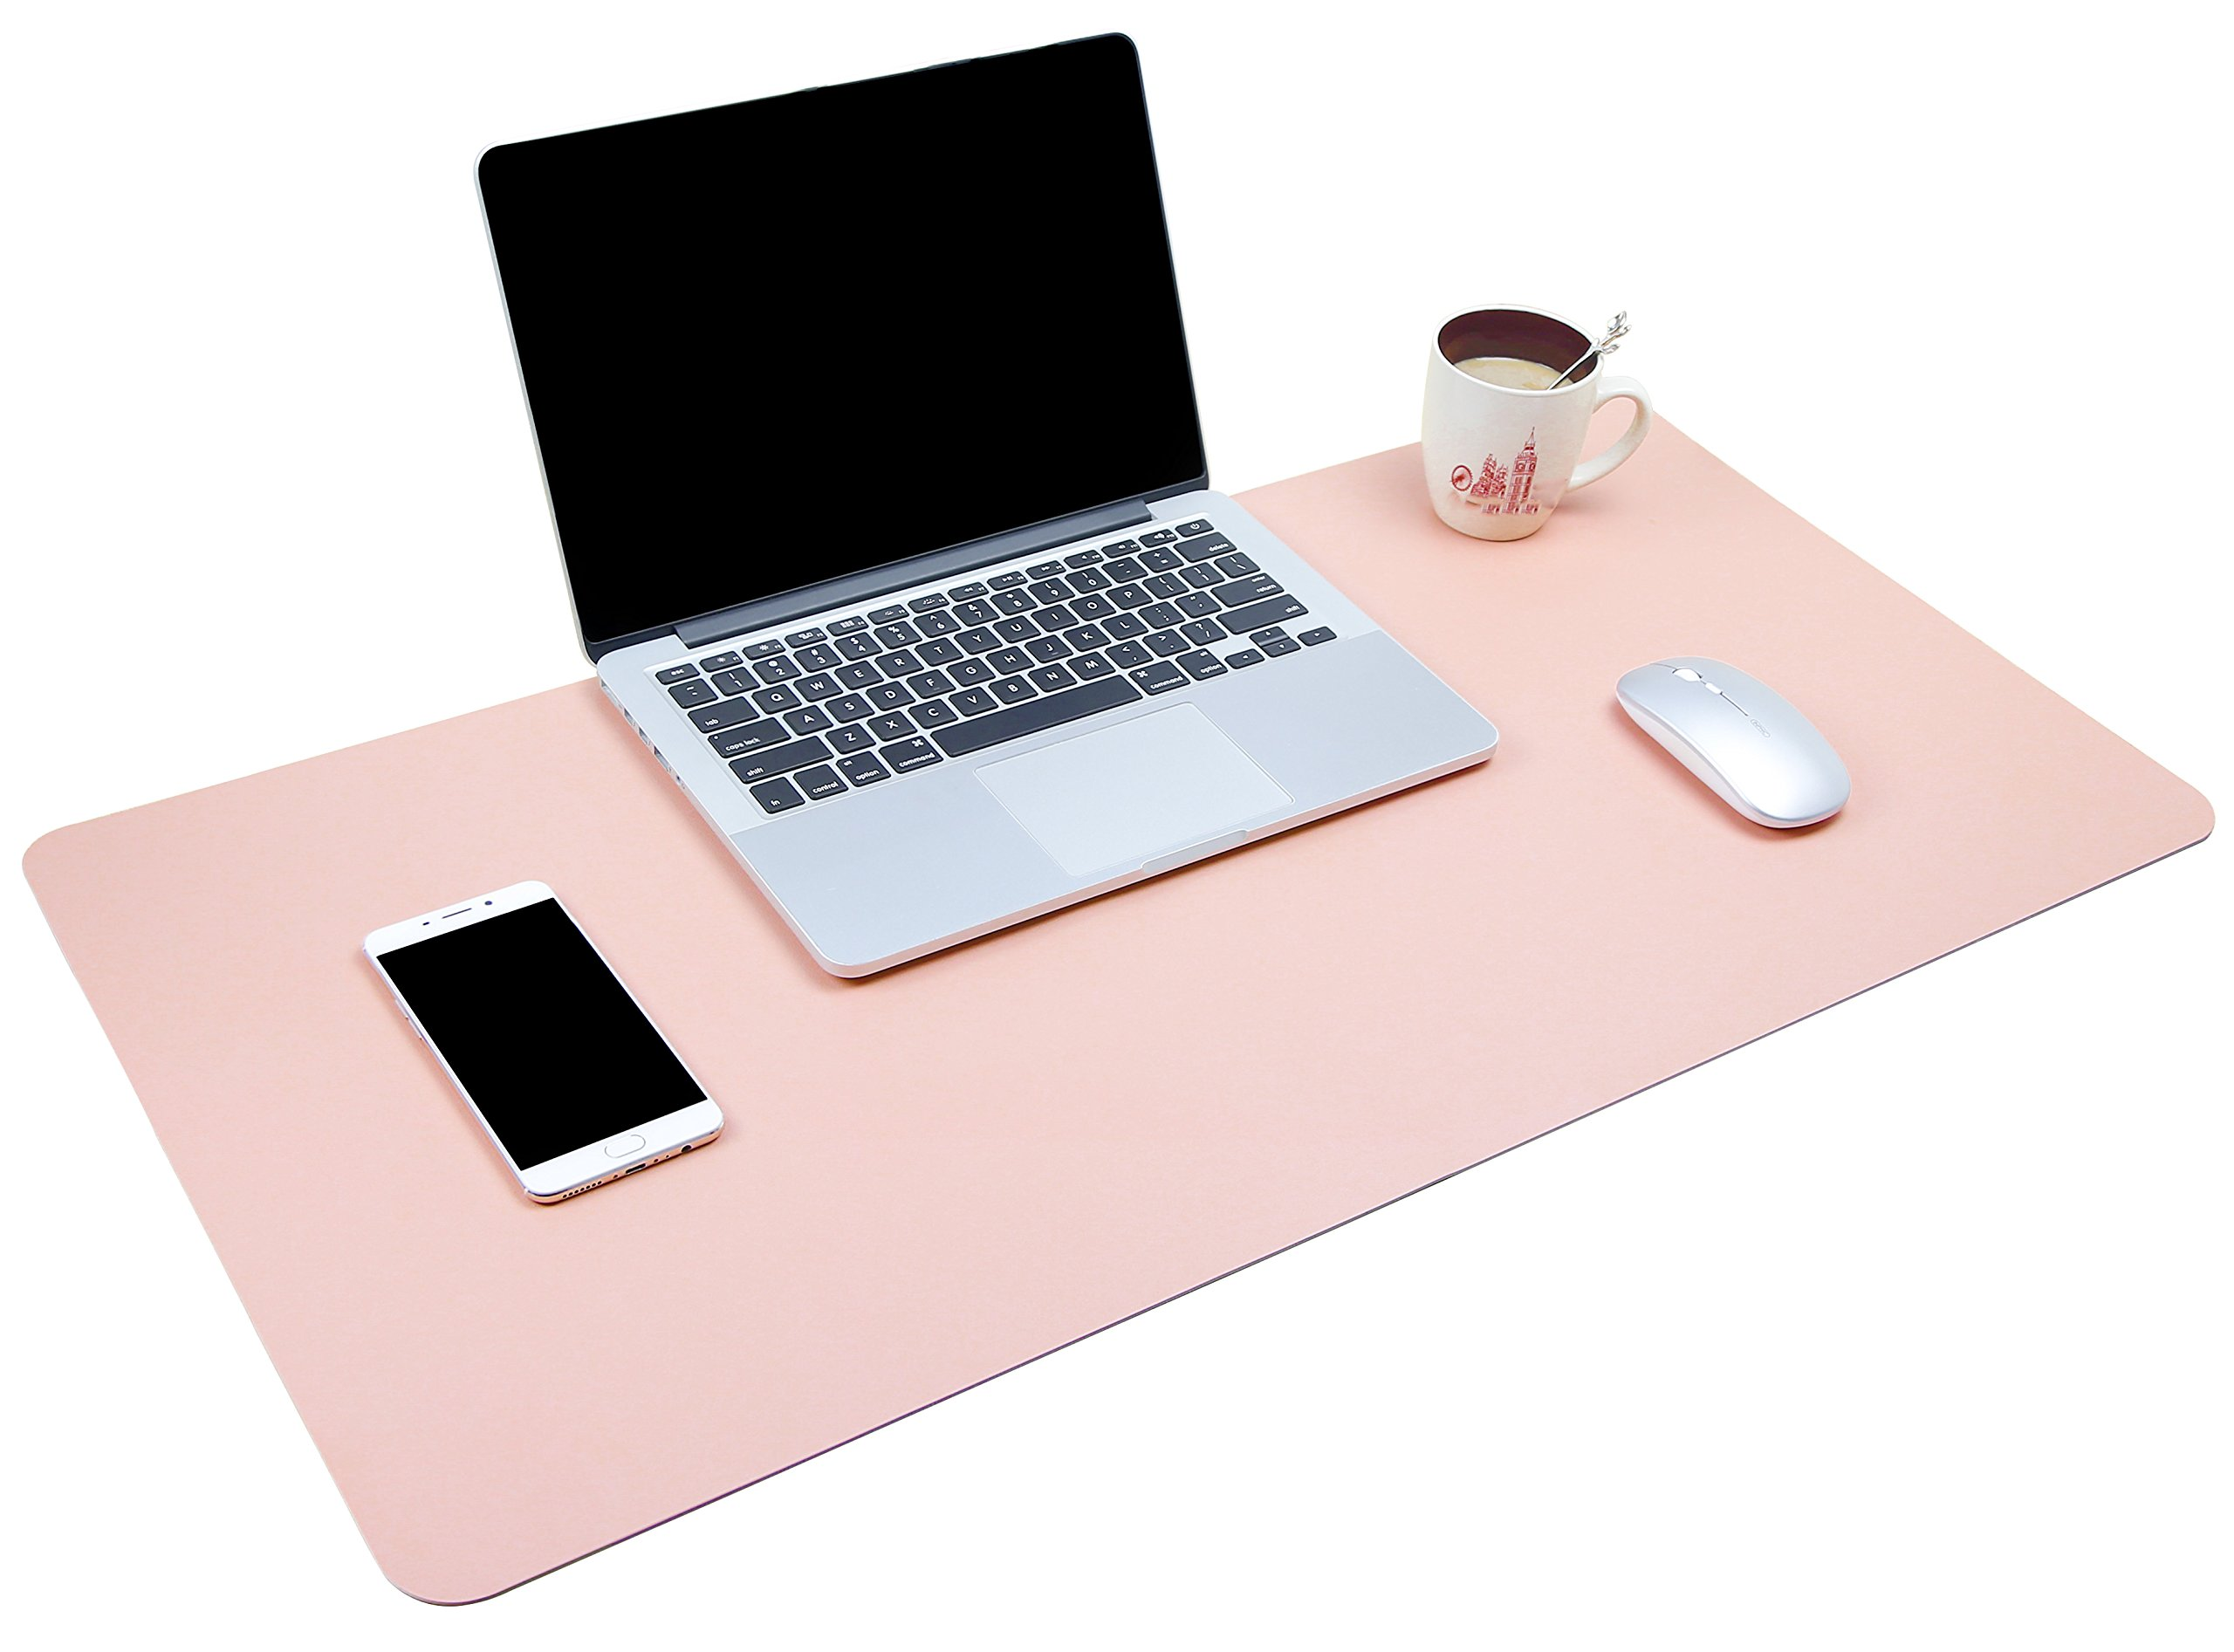 YSAGi Multifunctional Office Desk Pad, Ultra Thin Waterproof PU Leather Mouse Pad, Dual Use Desk Writing Mat for Office/Home (31.5'' x 15.7'', Pink) by YSAGi